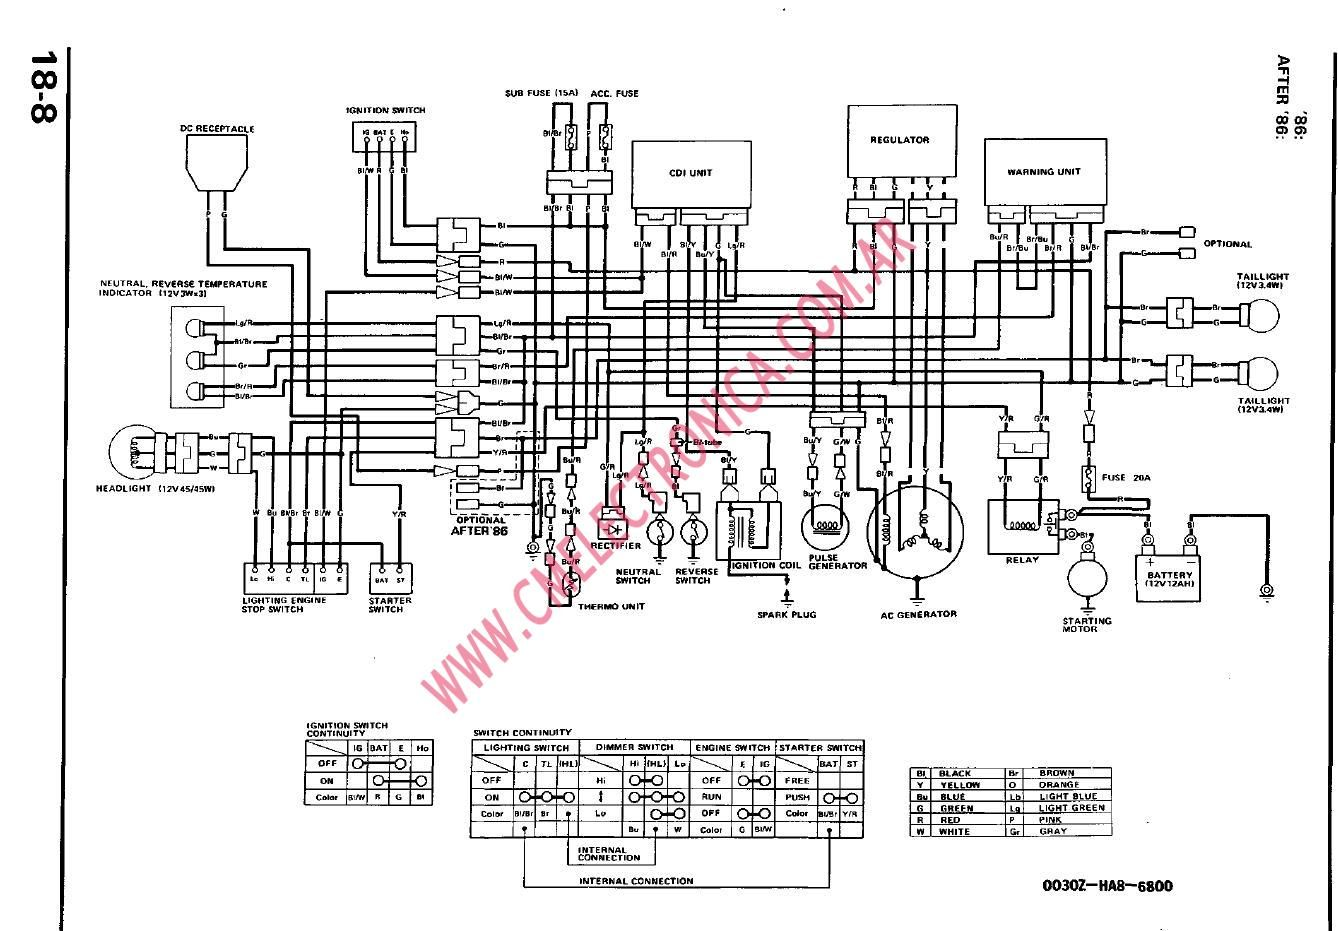 Wiring Diagram Honda Atv - Wiring Diagrams on